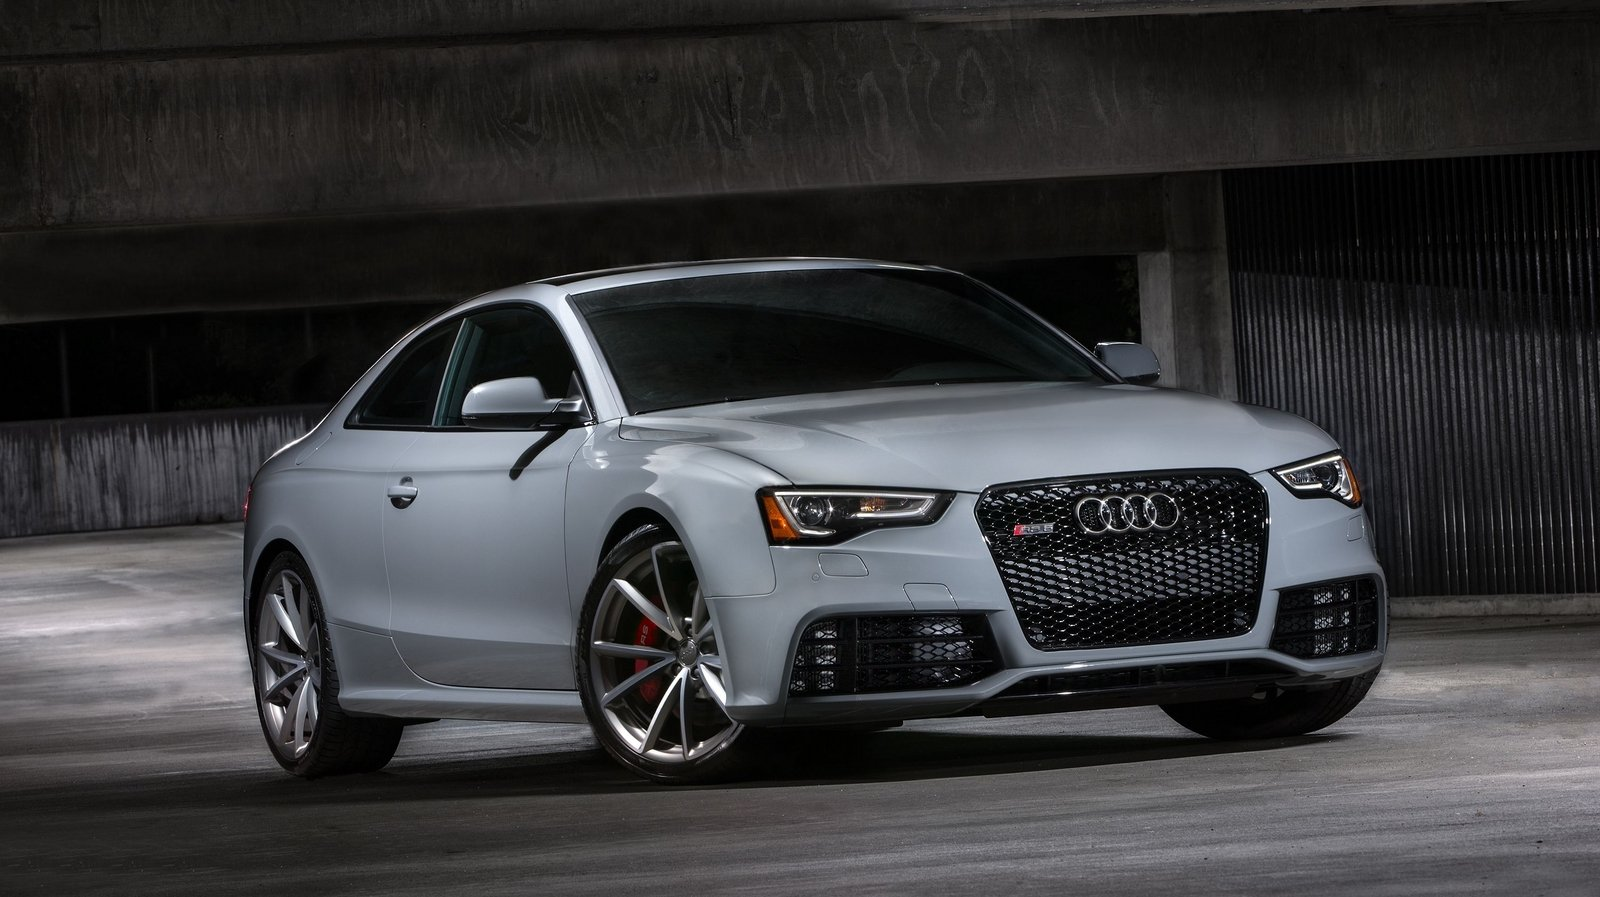 2015 audi rs 5 coupe sport edition review - top speed